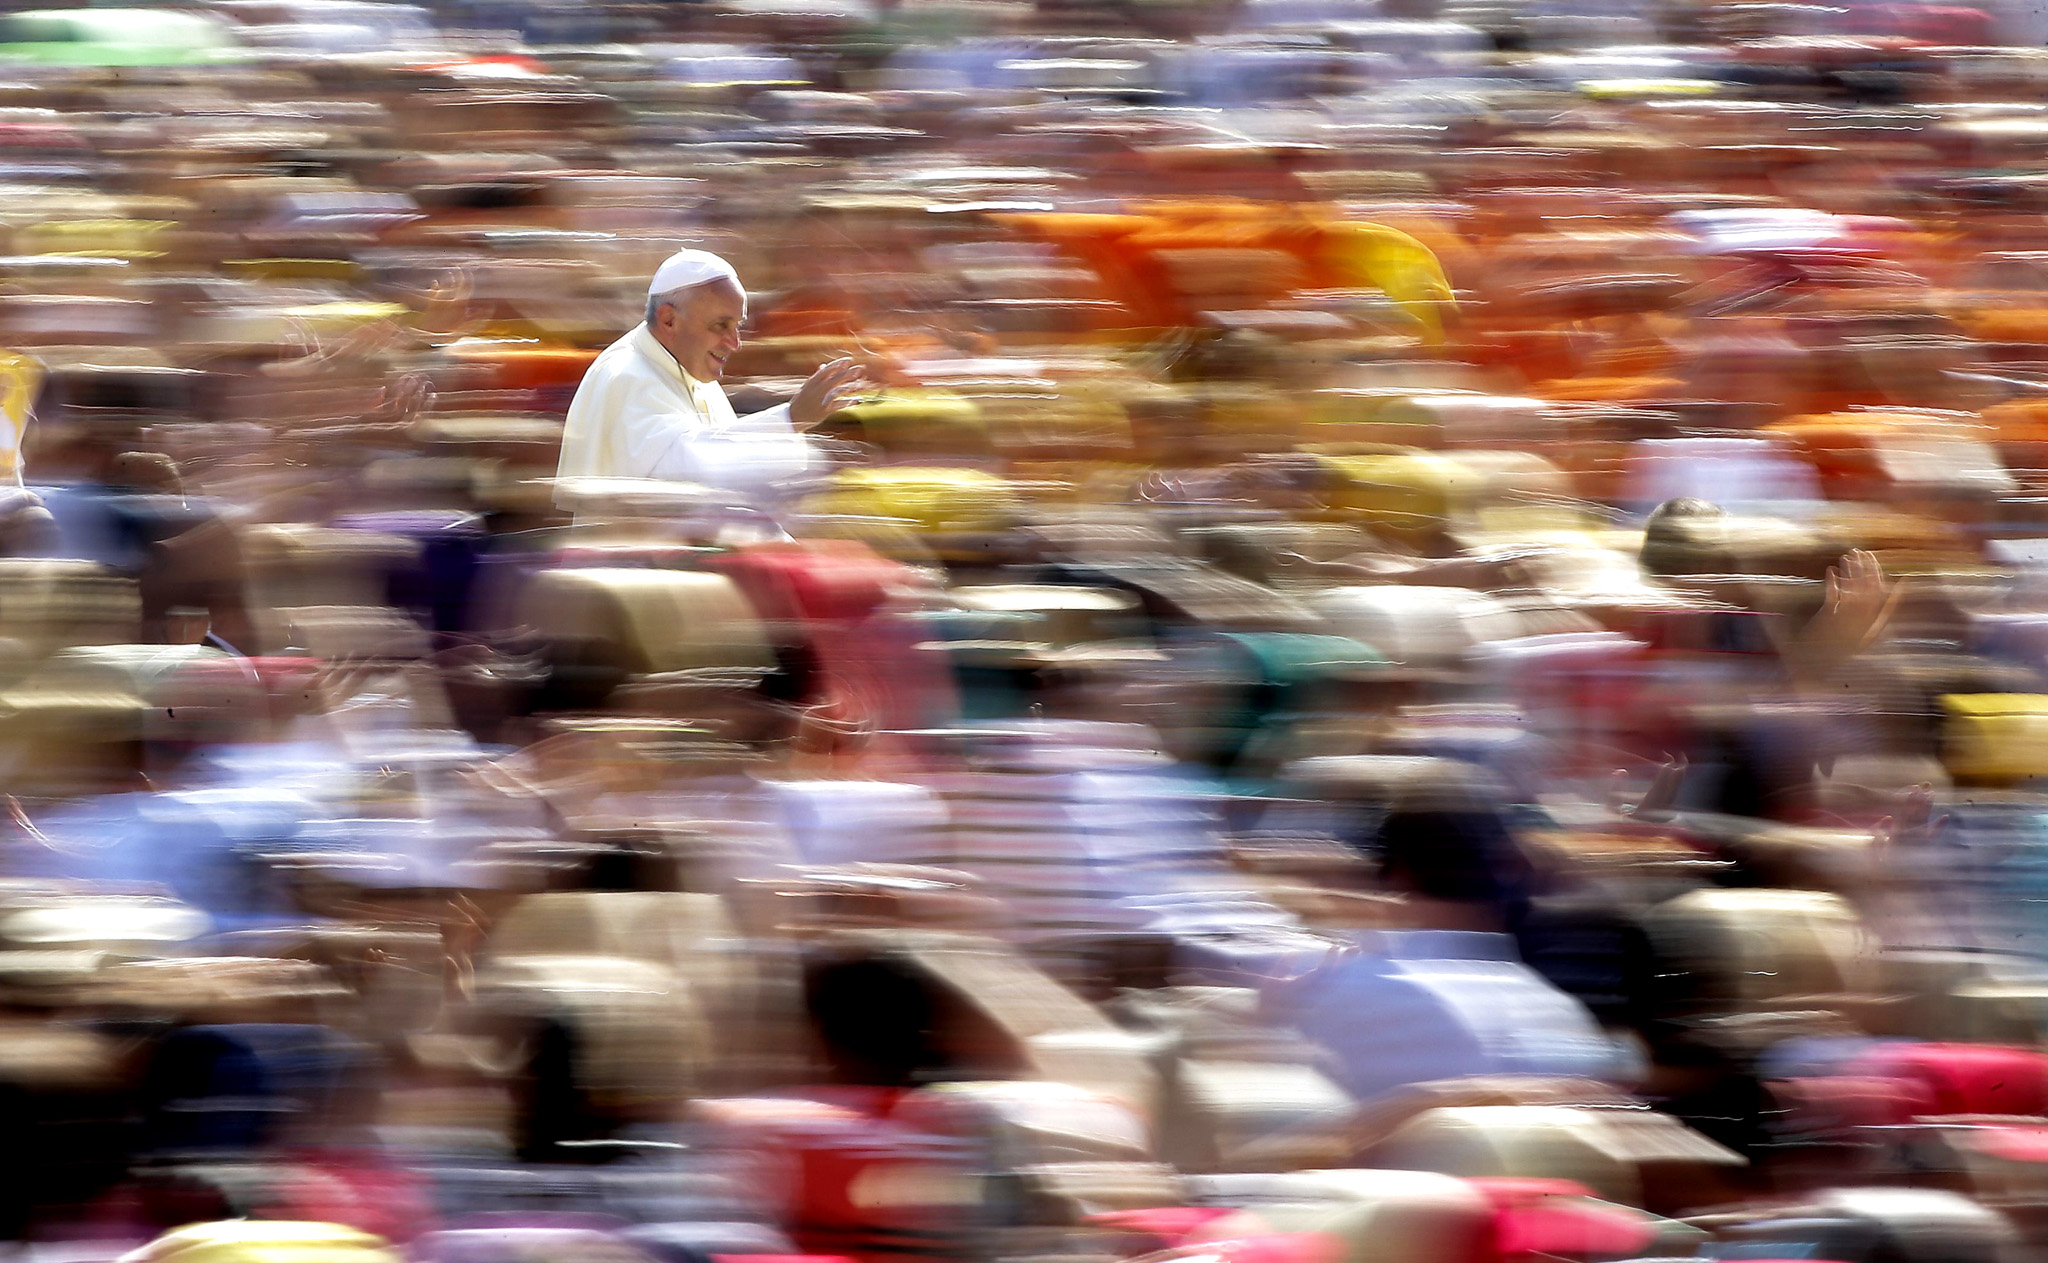 Pope Francis waves as he arrives to lead his weekly audience in Saint Peter's Square at the Vatican...Pope Francis waves as he arrives to lead his weekly audience in Saint Peter's Square at the Vatican August 27, 2014.  REUTERS/Max Rossi